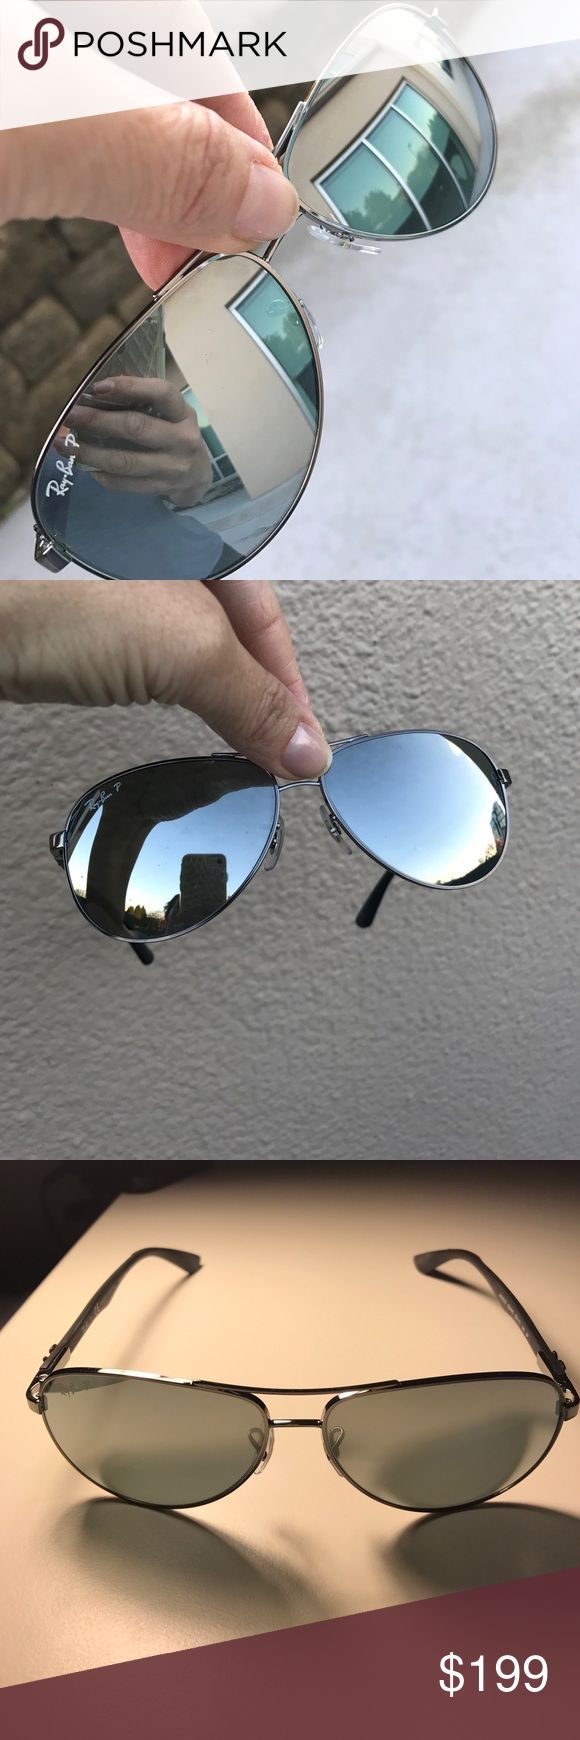 Ray Ban Polarized Aviators RB8313 Gunmetal, Carbon Fibre, Polarized Silver Mirror. Lens size 58 -13, Temple Length 140. Great condition, worn only a few times. A few dot like scratches(hardly noticeable-see pic). Comes with original box, case & paperwork. Ray-Ban Accessories Sunglasses